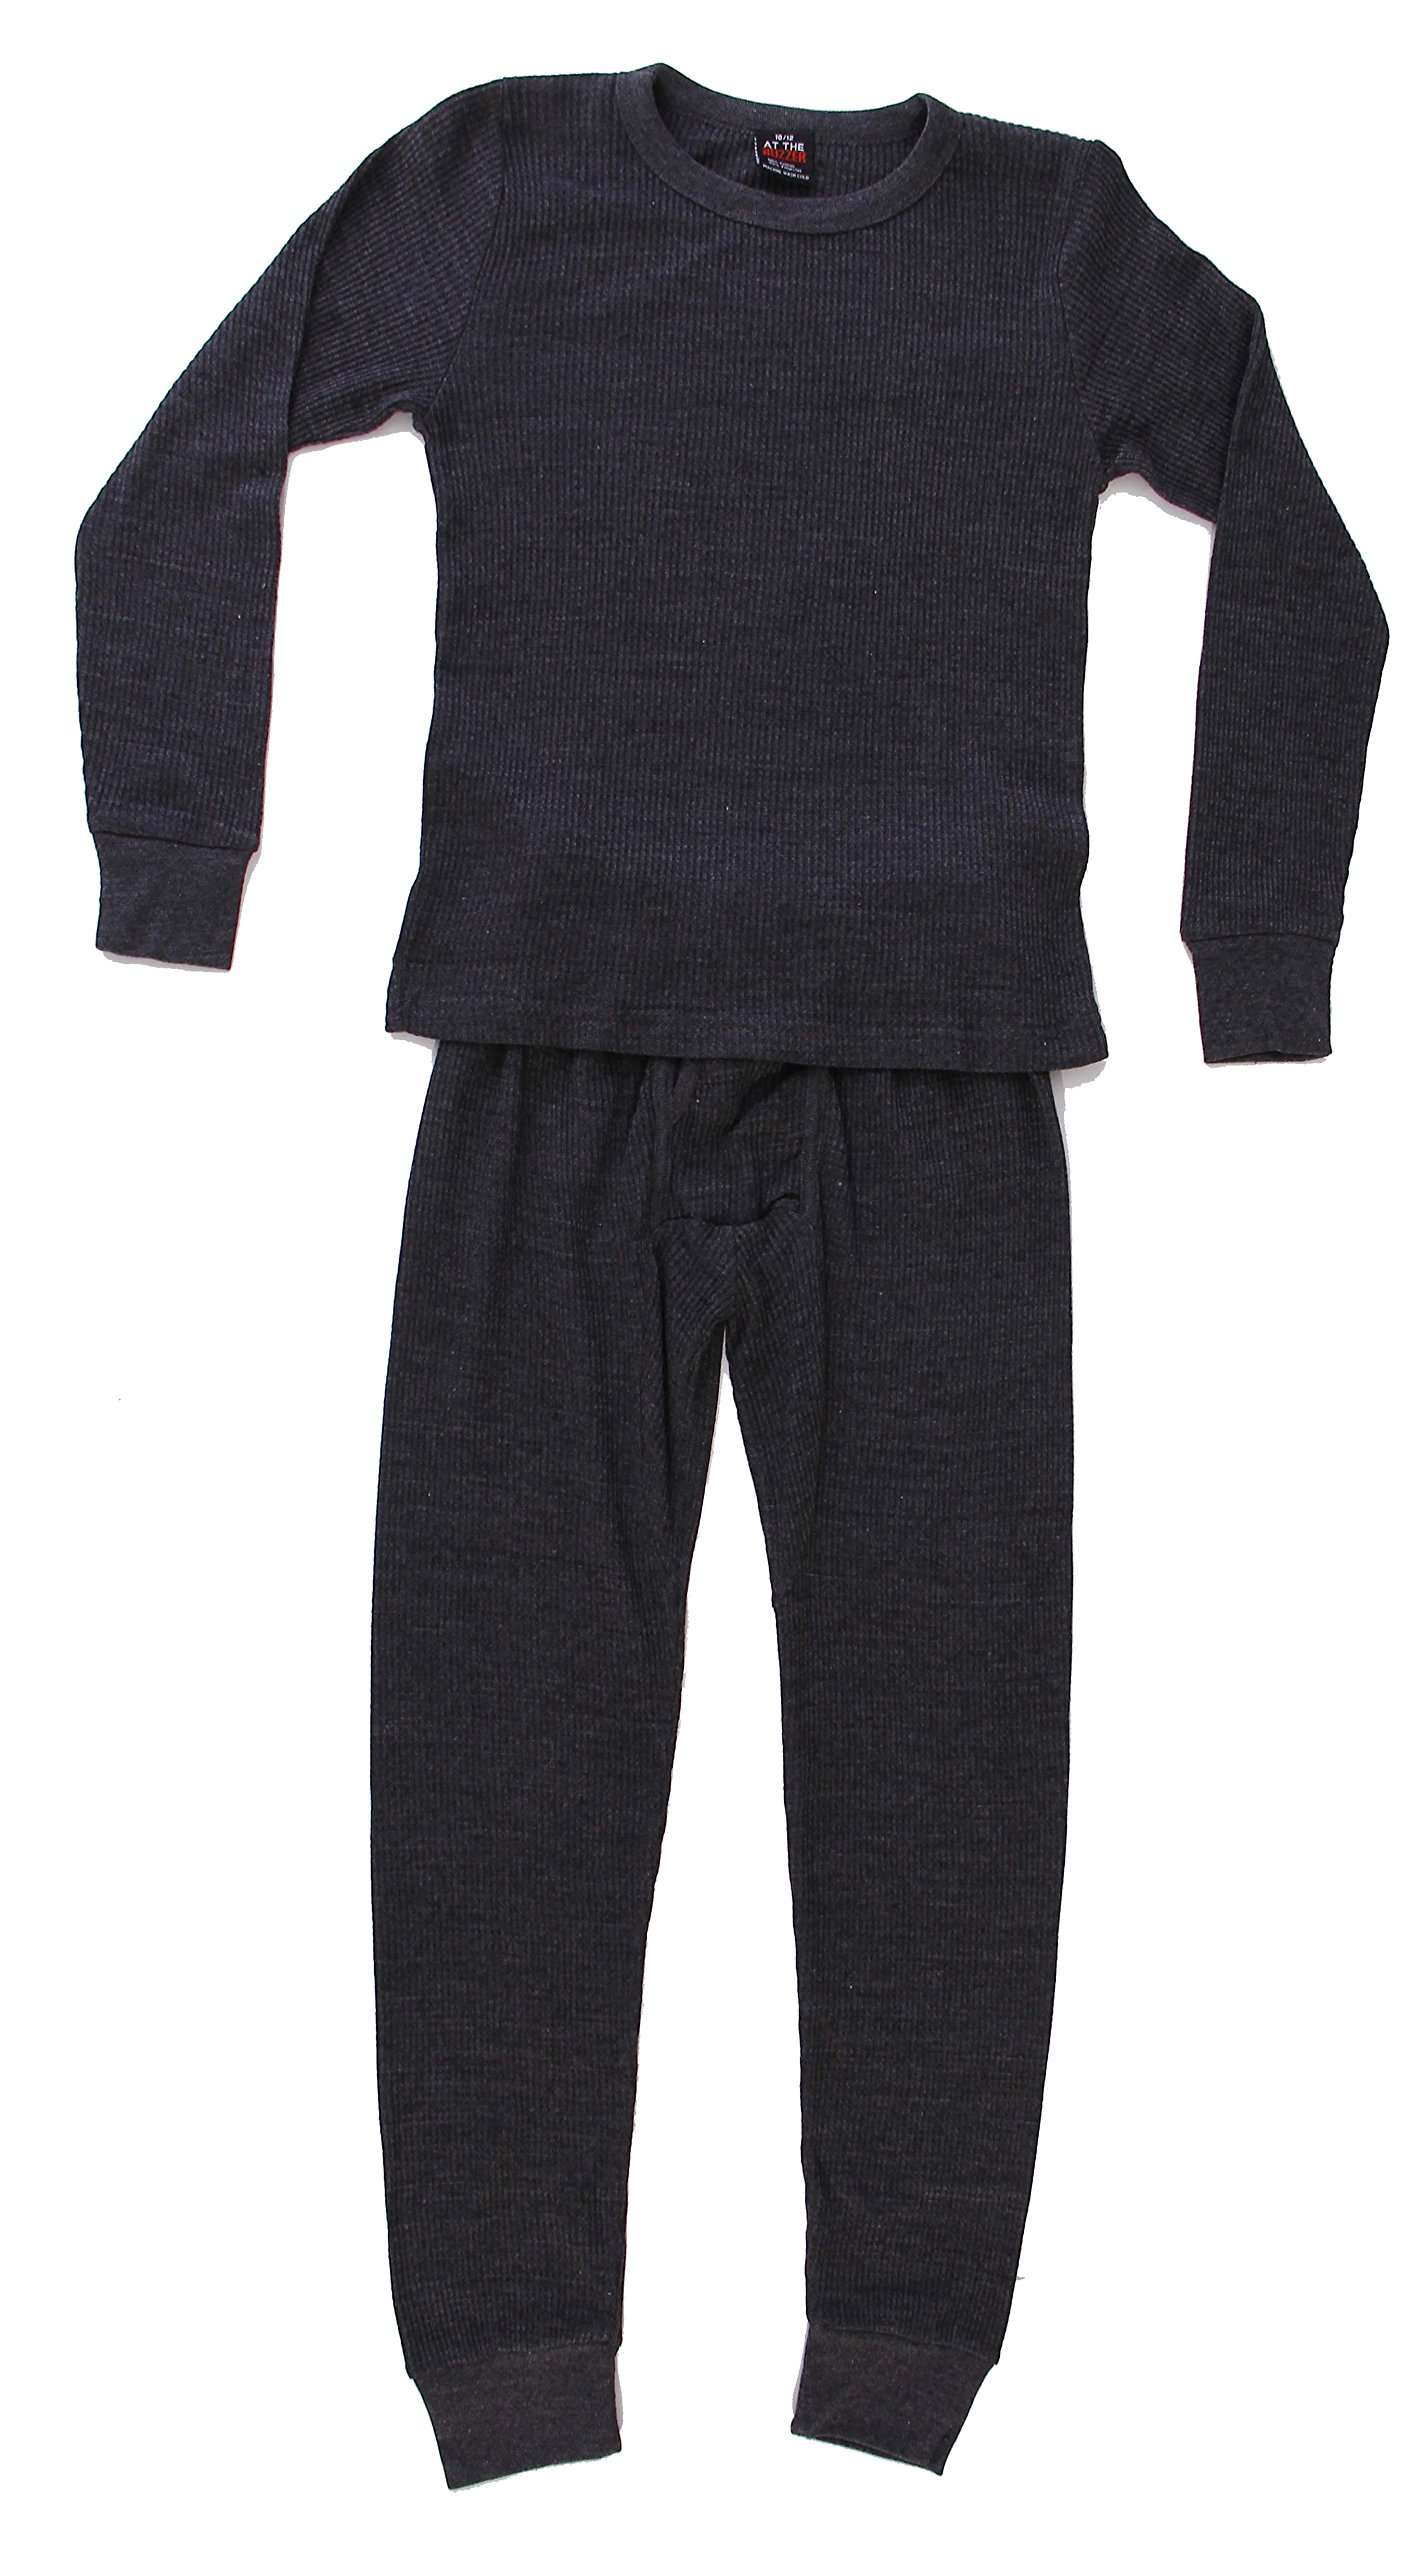 At The Buzzer Thermal Underwear Set for Boys 95362-Charcoal-8 by At The Buzzer